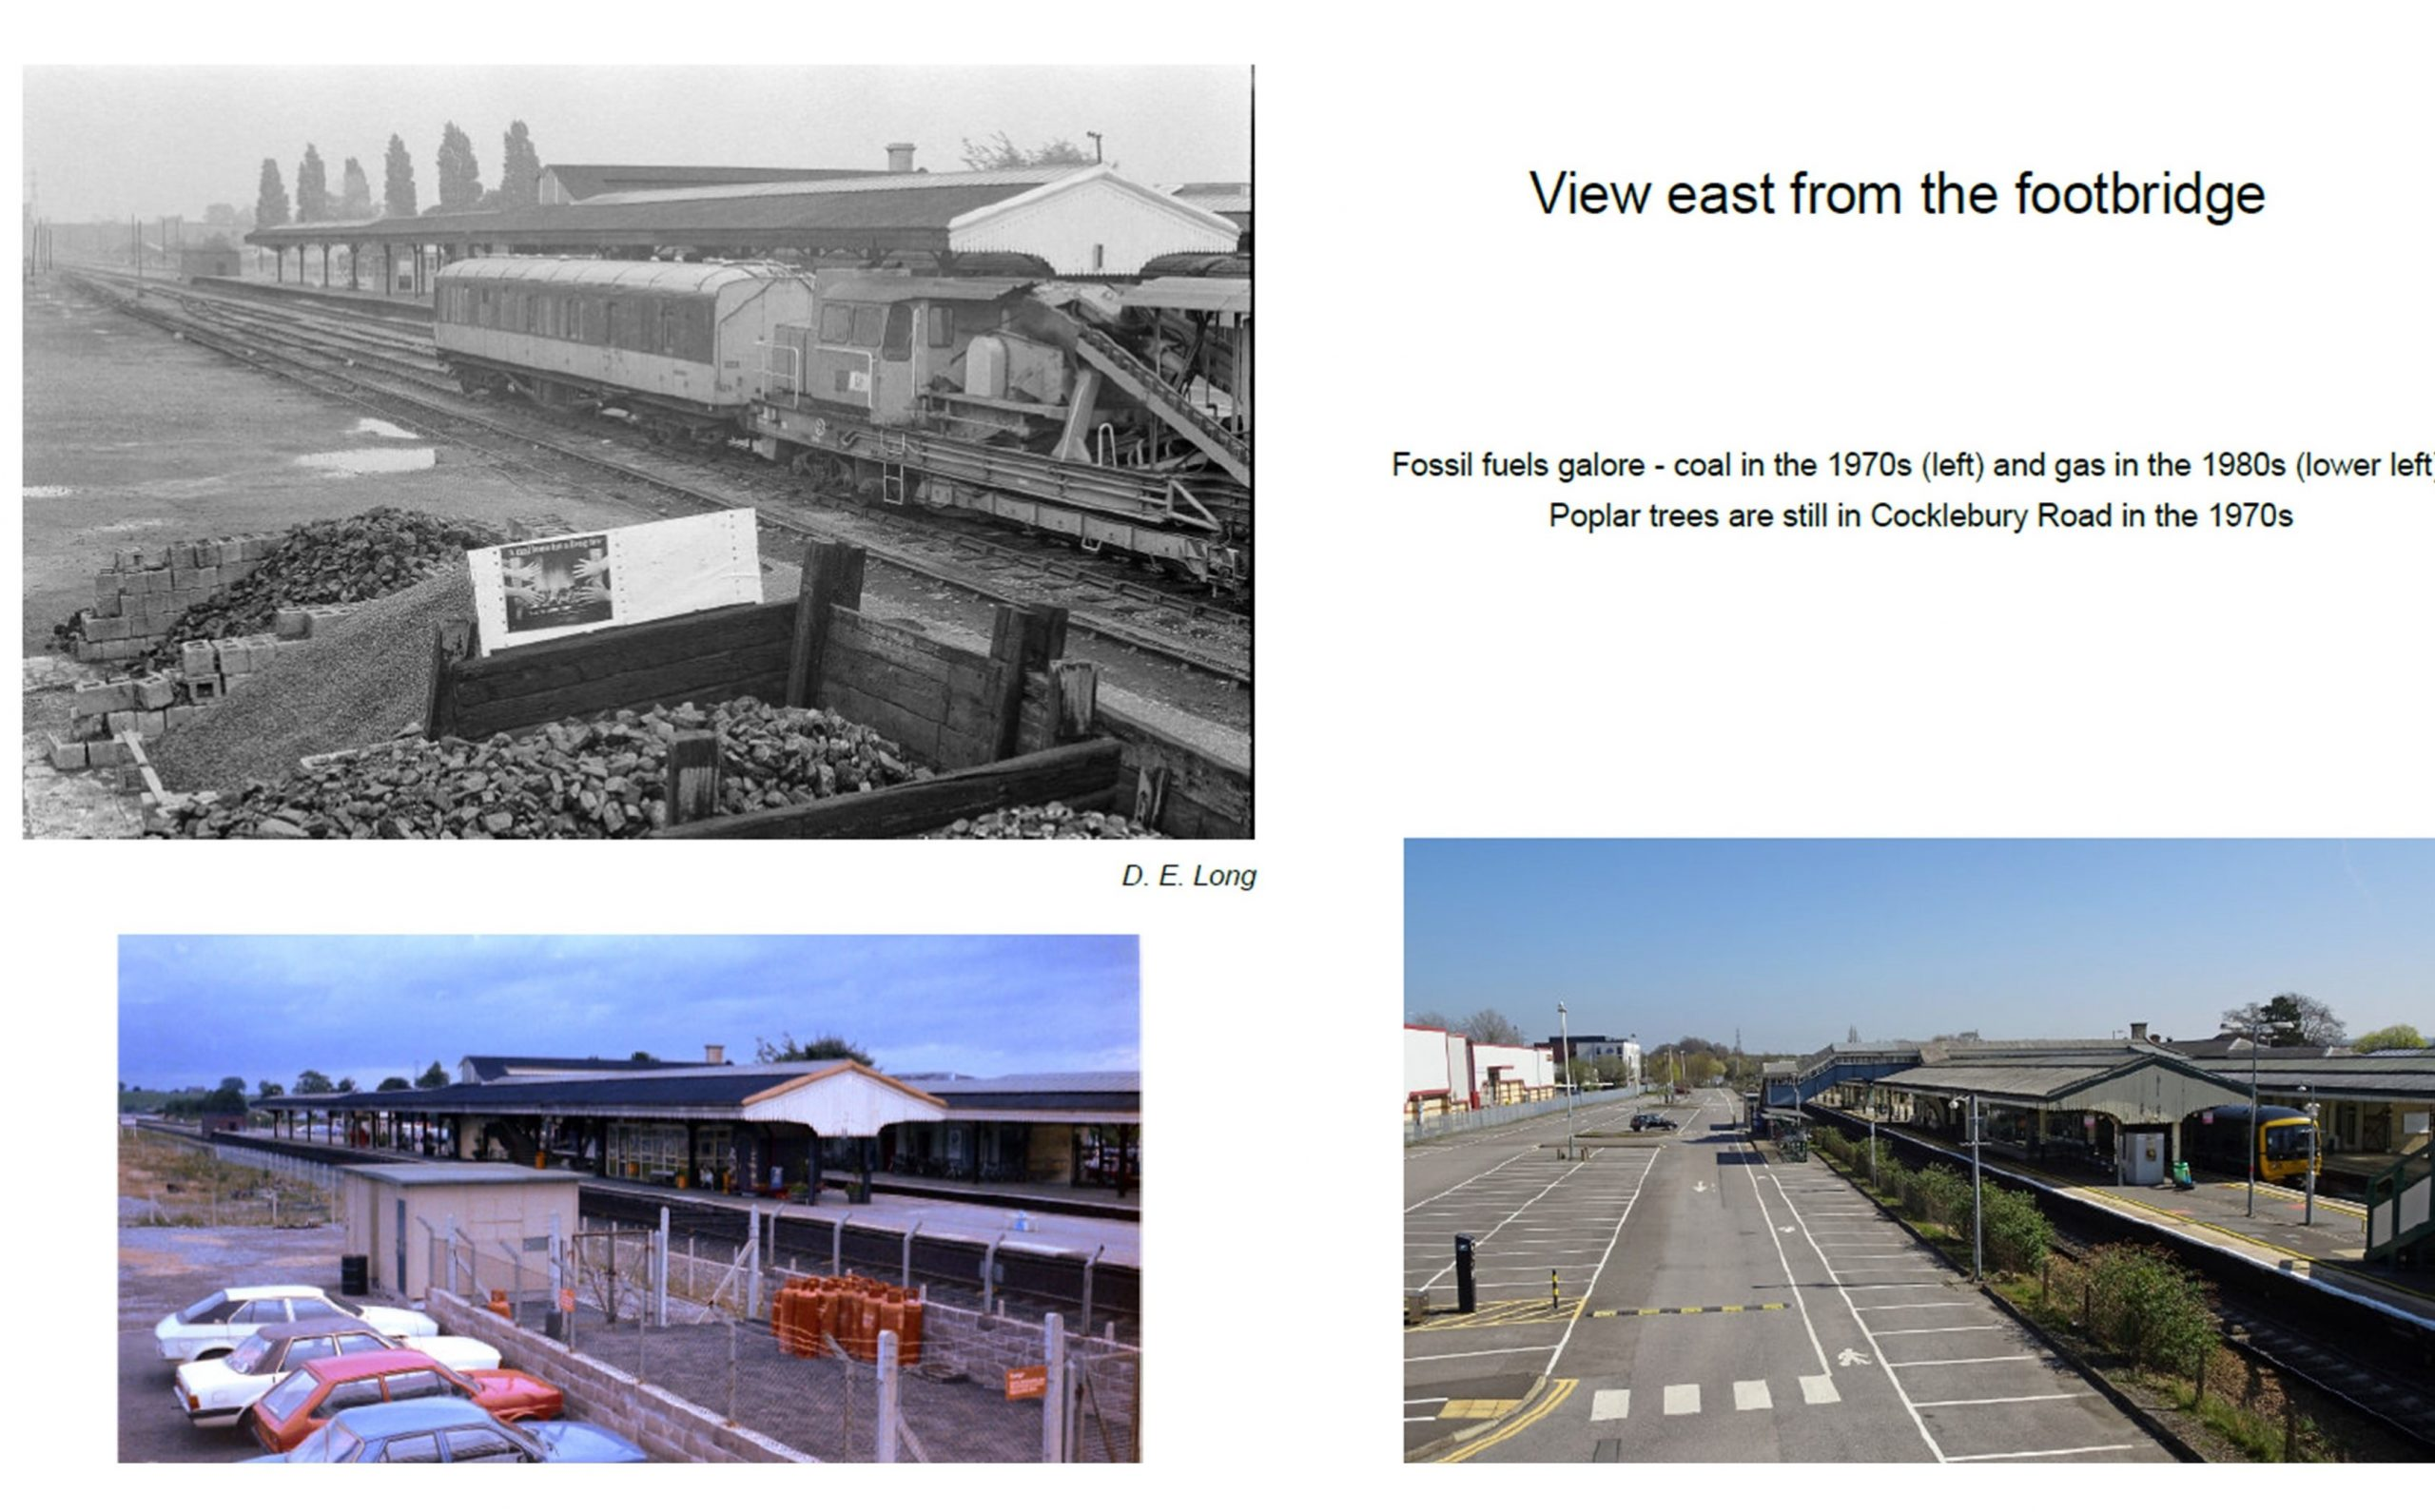 Views east from the footbridge showing the north side used to store coal, then gas and now as a car park